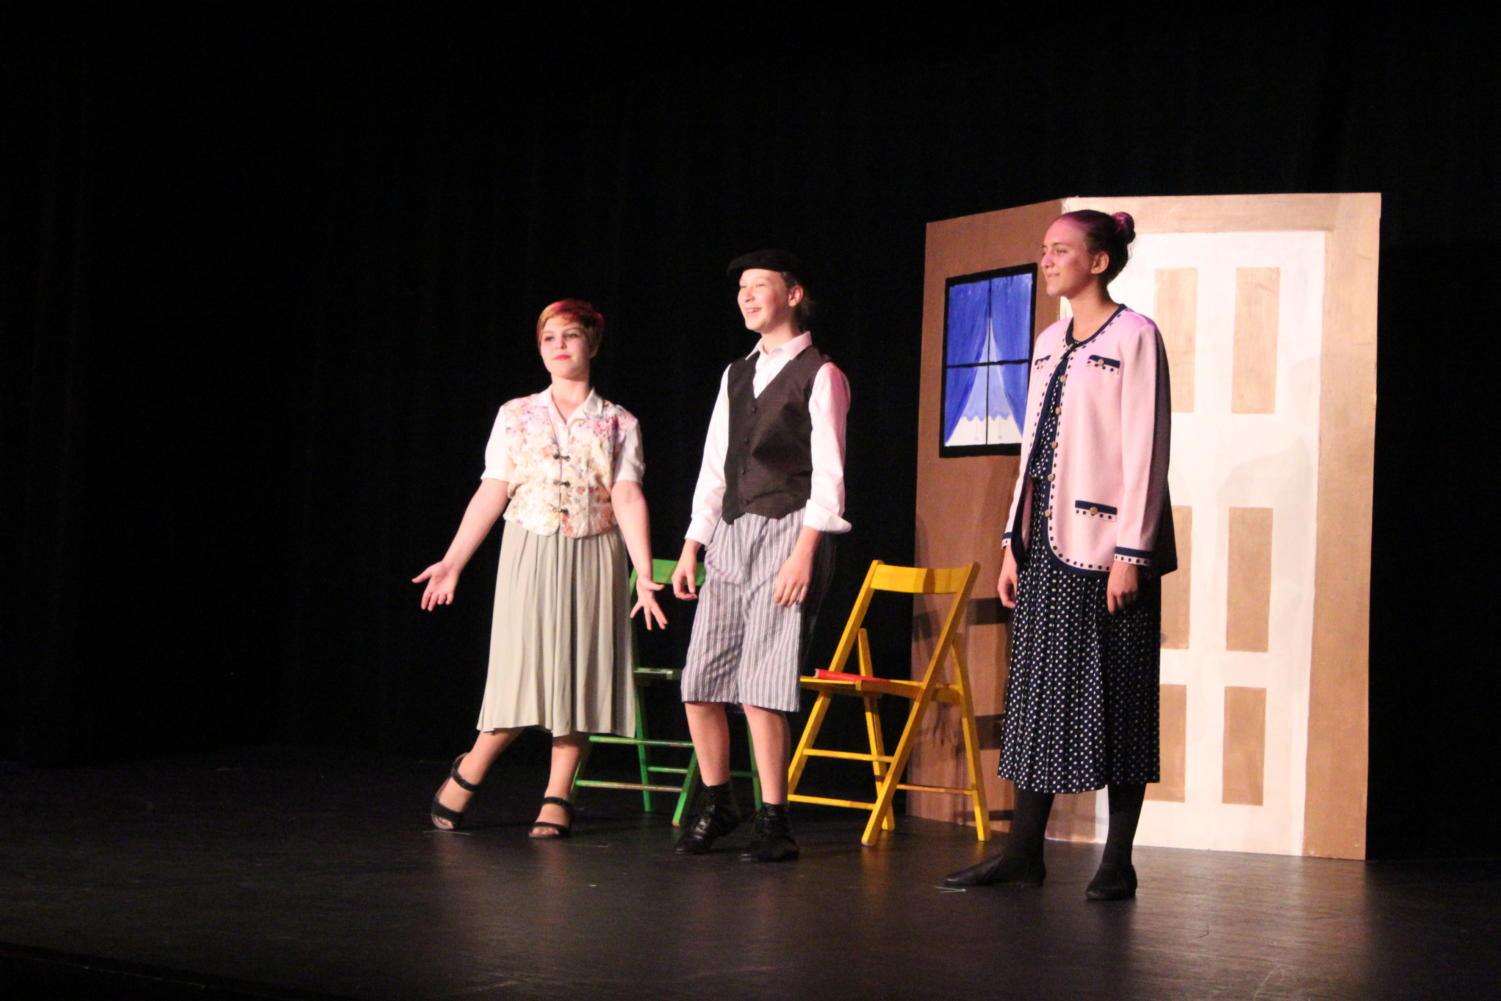 The Paroo Family, portrayed by Sarah Darby, Natalie Cona, and Samantha Treadwell, share the stage during the